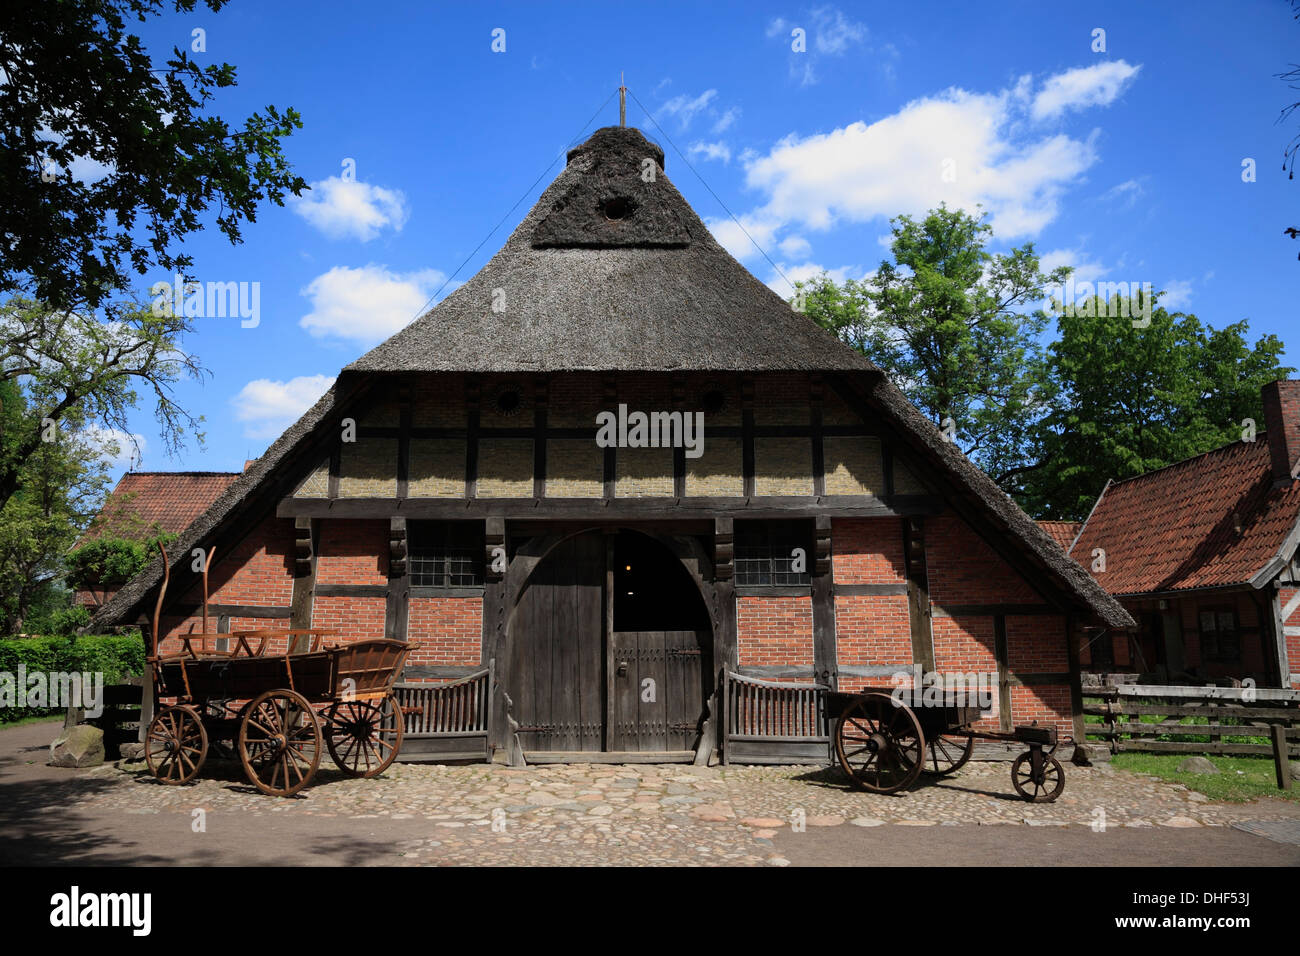 bad zwischenahn museum ammerlaender bauernhaus farmhouse stock photo 62413558 alamy. Black Bedroom Furniture Sets. Home Design Ideas